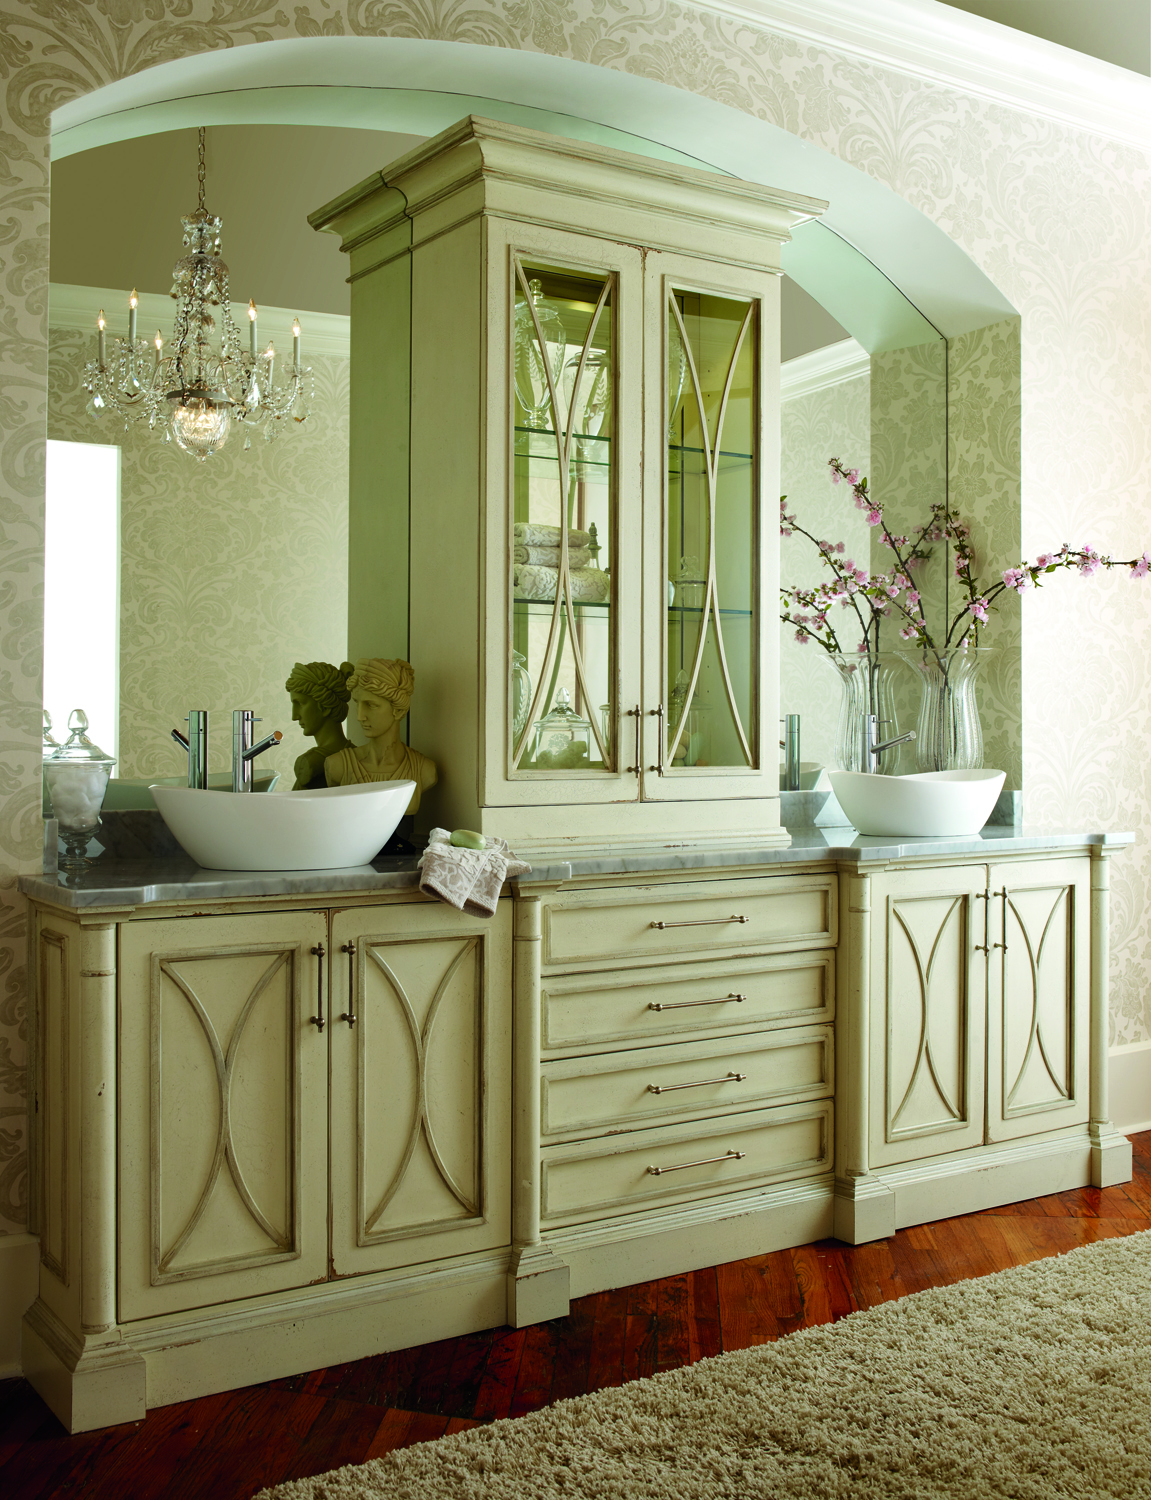 Habersham Cabinetry designed this gorgeous dual vanity with treated wood cabinetry, white vessel sinks, and marble countertop. Glass door cabinet divides the massive single wall mounted mirror at center.